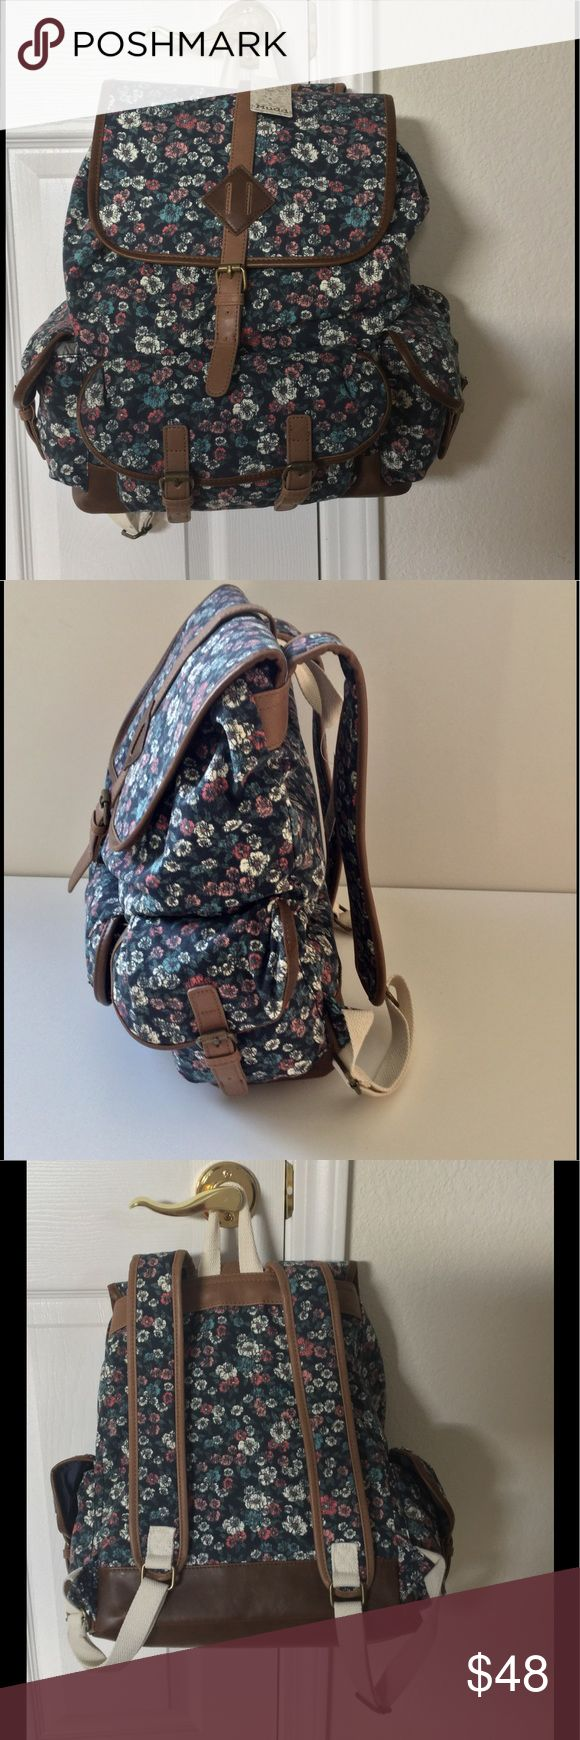 "✅ 🆕 Mudd Blue Floral Backpack NWT Blue, white &pink floral on navy background. Canvas w/ faux leather trim. Adjustable drawstring & top flap w/ magnetic closure. Outer pockets on the front and sides. Interior zip pocket & slip pockets. Adjustable padded straps. Locker tab. 15.5"" H X 5"" W X 13""L not including outer pockets. New with tags  🎀Bundle discount  ⭐️5 star rated Suggested User 🚭Smoke free home 🚫No trades please  😍 Thank you for shopping with me. Please ask all questions before…"